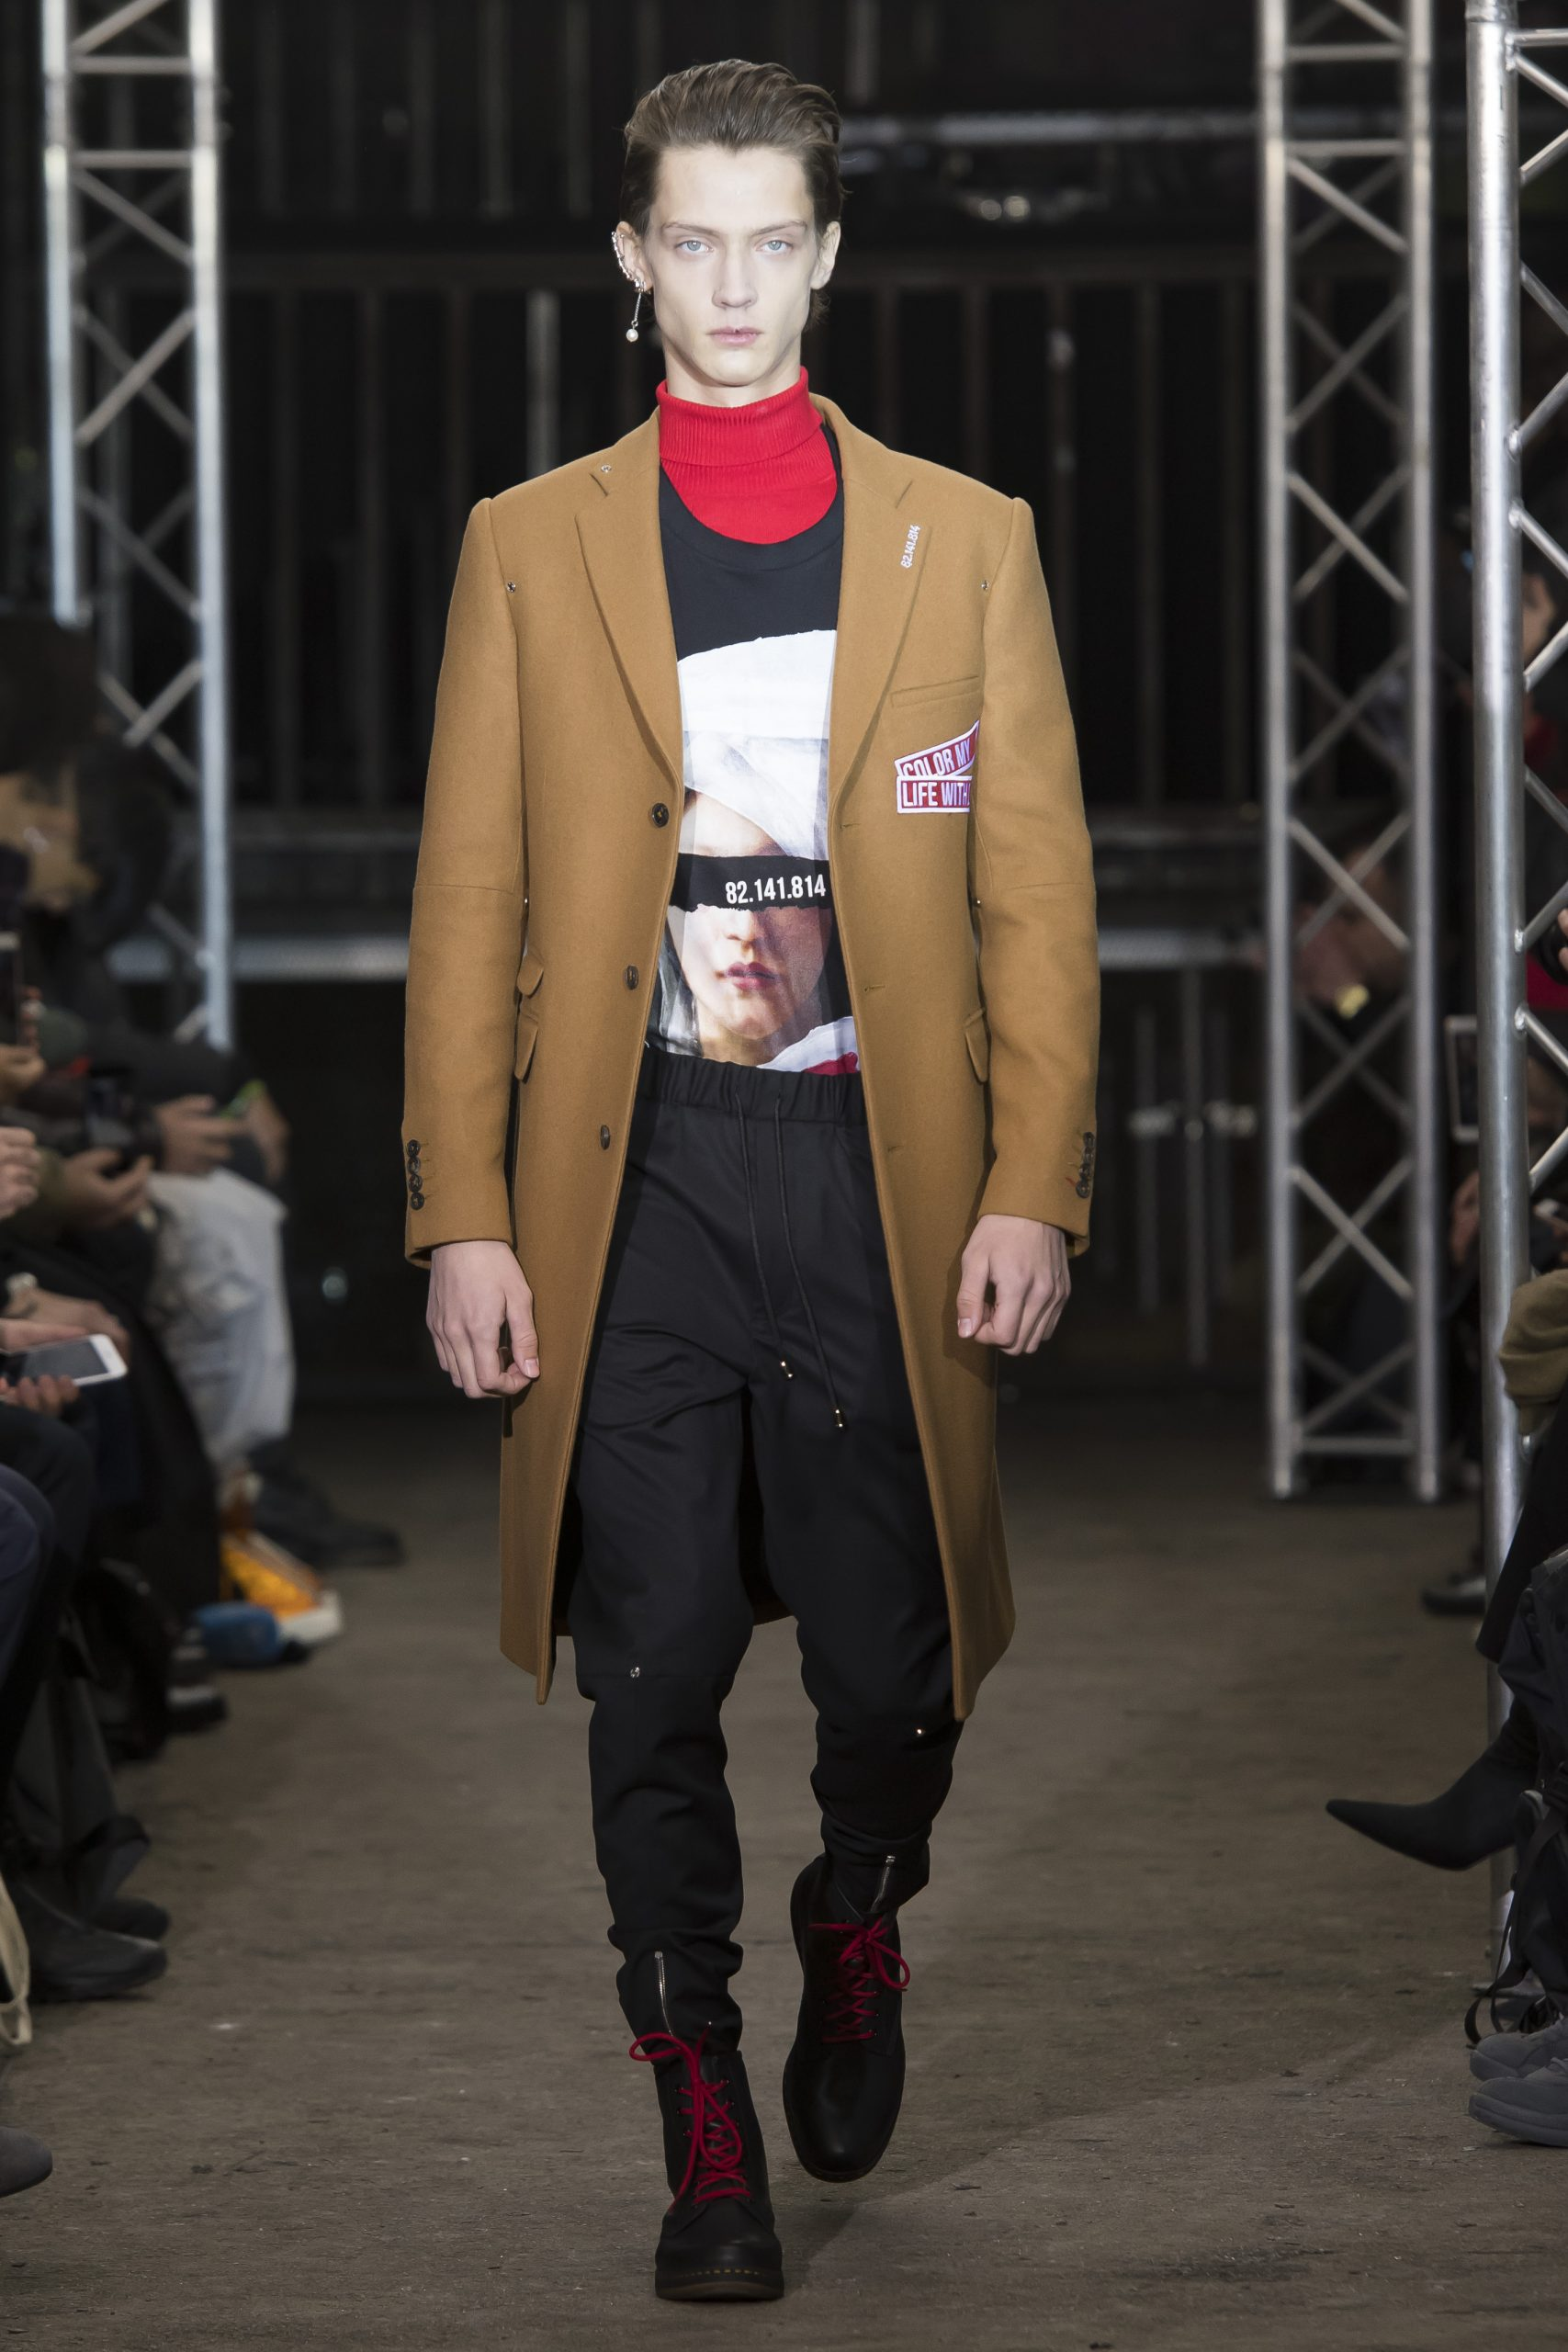 ICOSAE F/W 2017 ICOSAE F/W 2017 Vanity Teen Menswear & new faces magazine